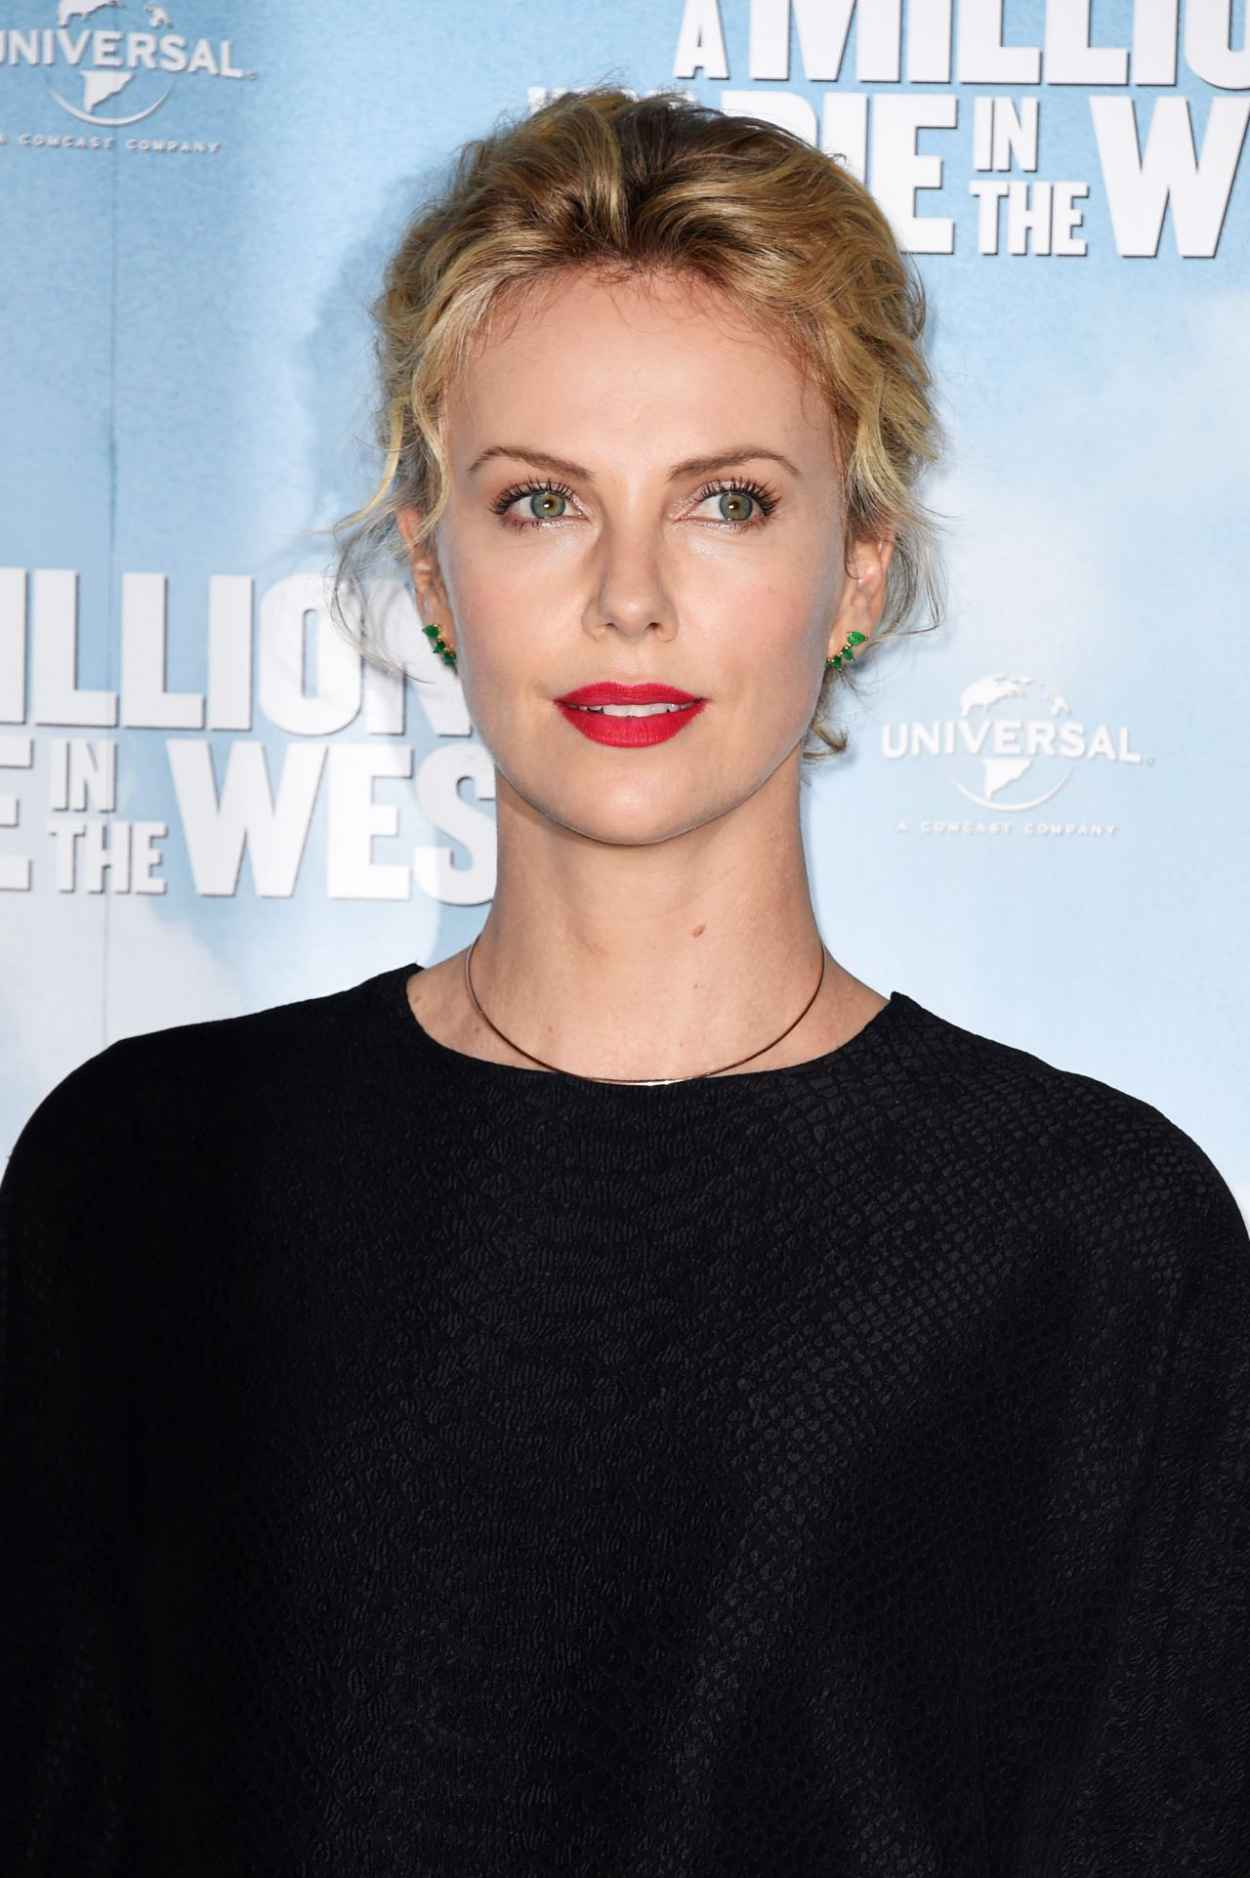 Charlize Theron - -A Million Ways To Die In The West- photocall in London - May 2015-1